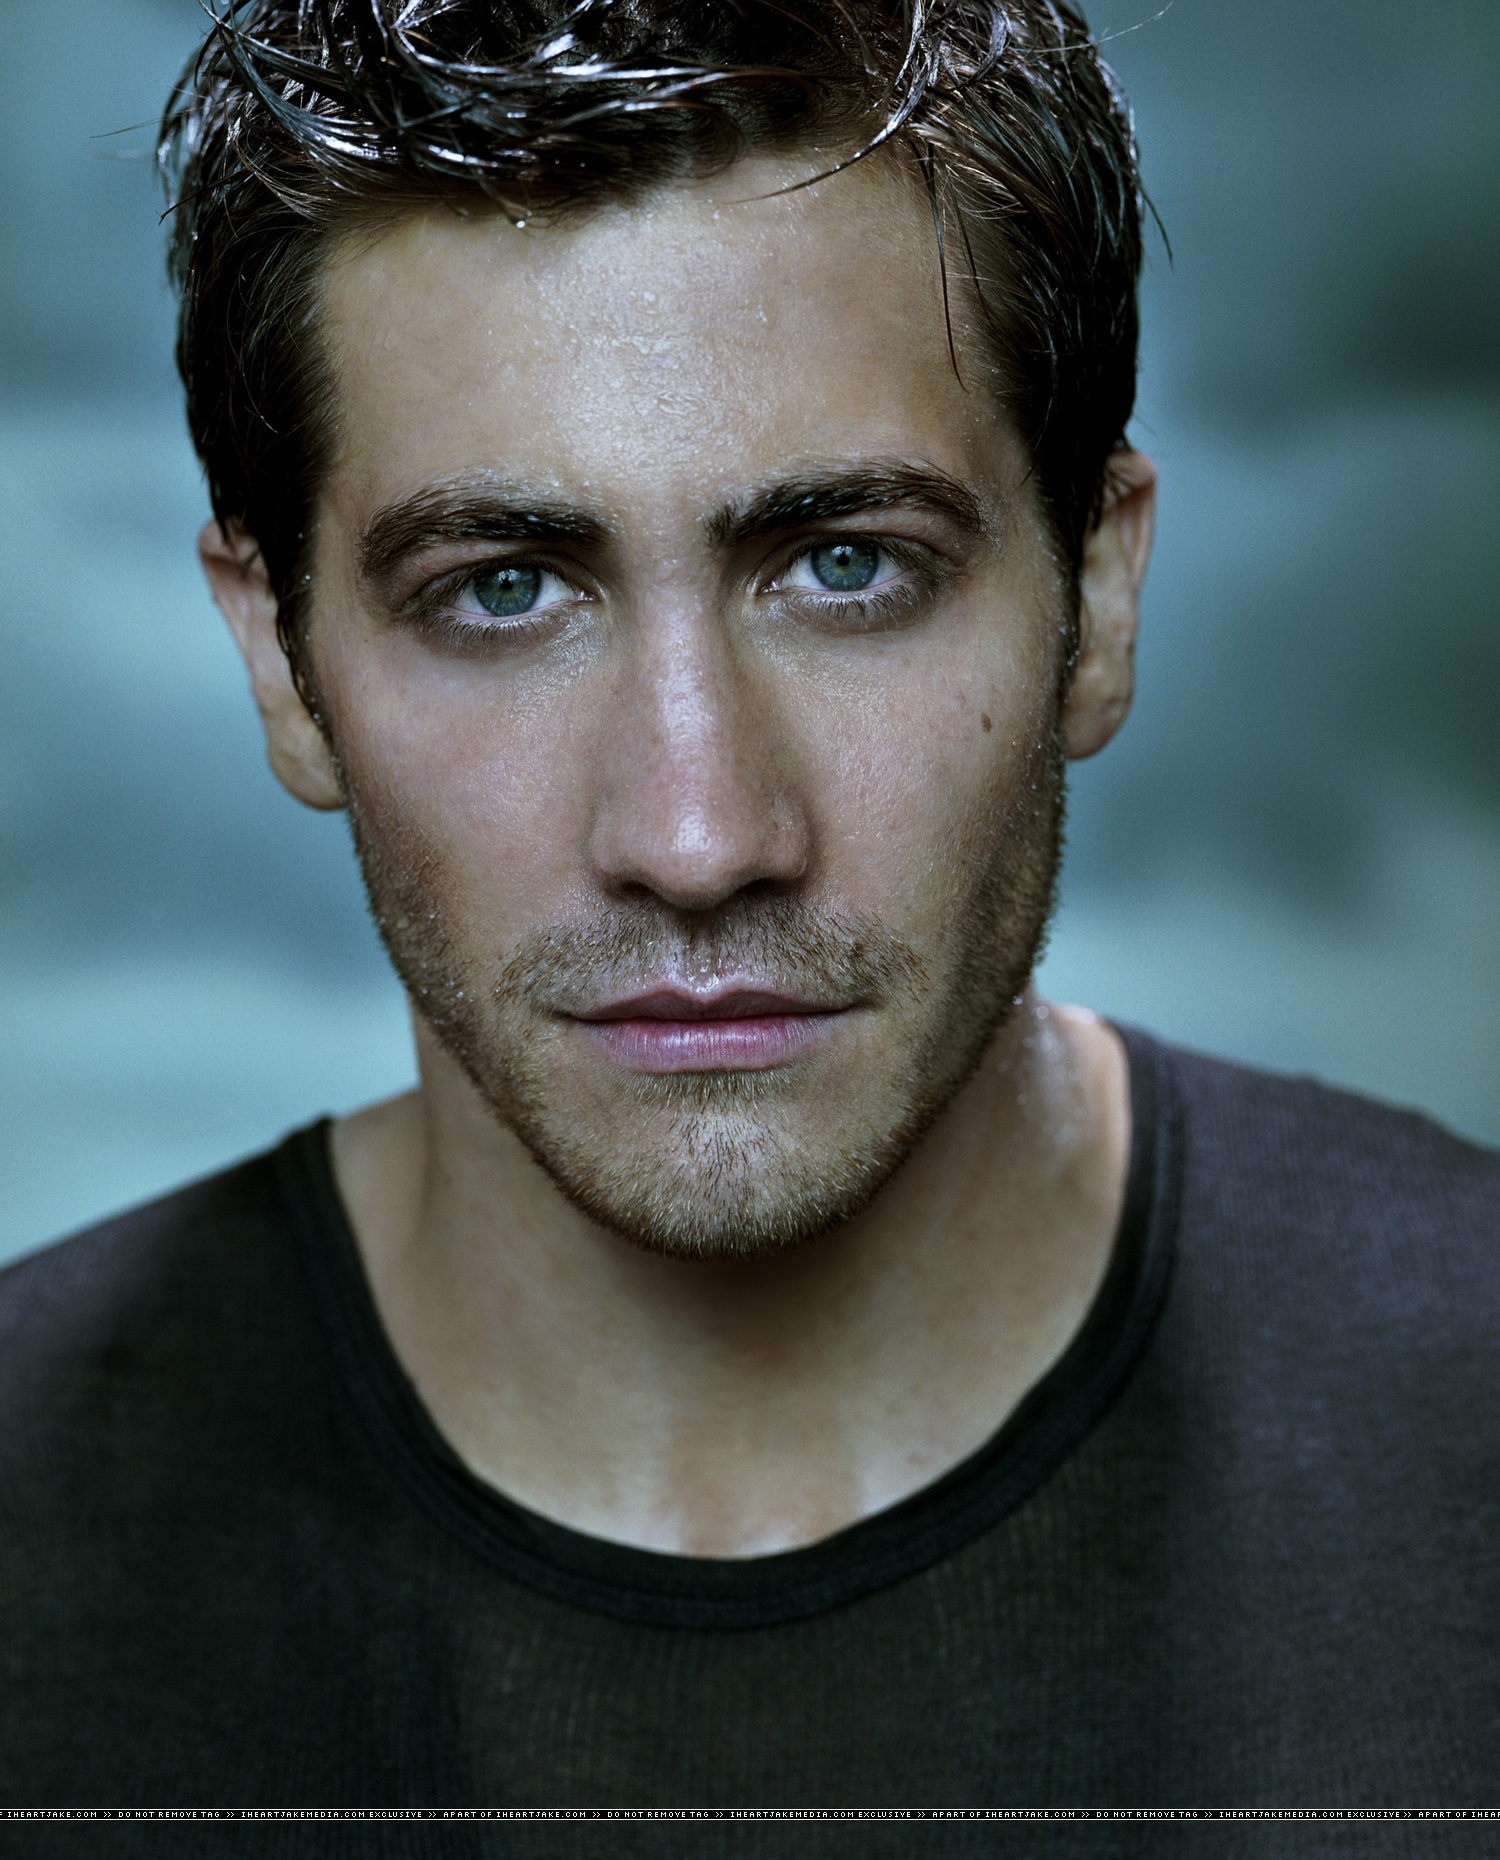 ... about Jake gyllenhaal on Pinterest | Jake gyllenhaal, Jake g and Smile Jake Gyllenhaal